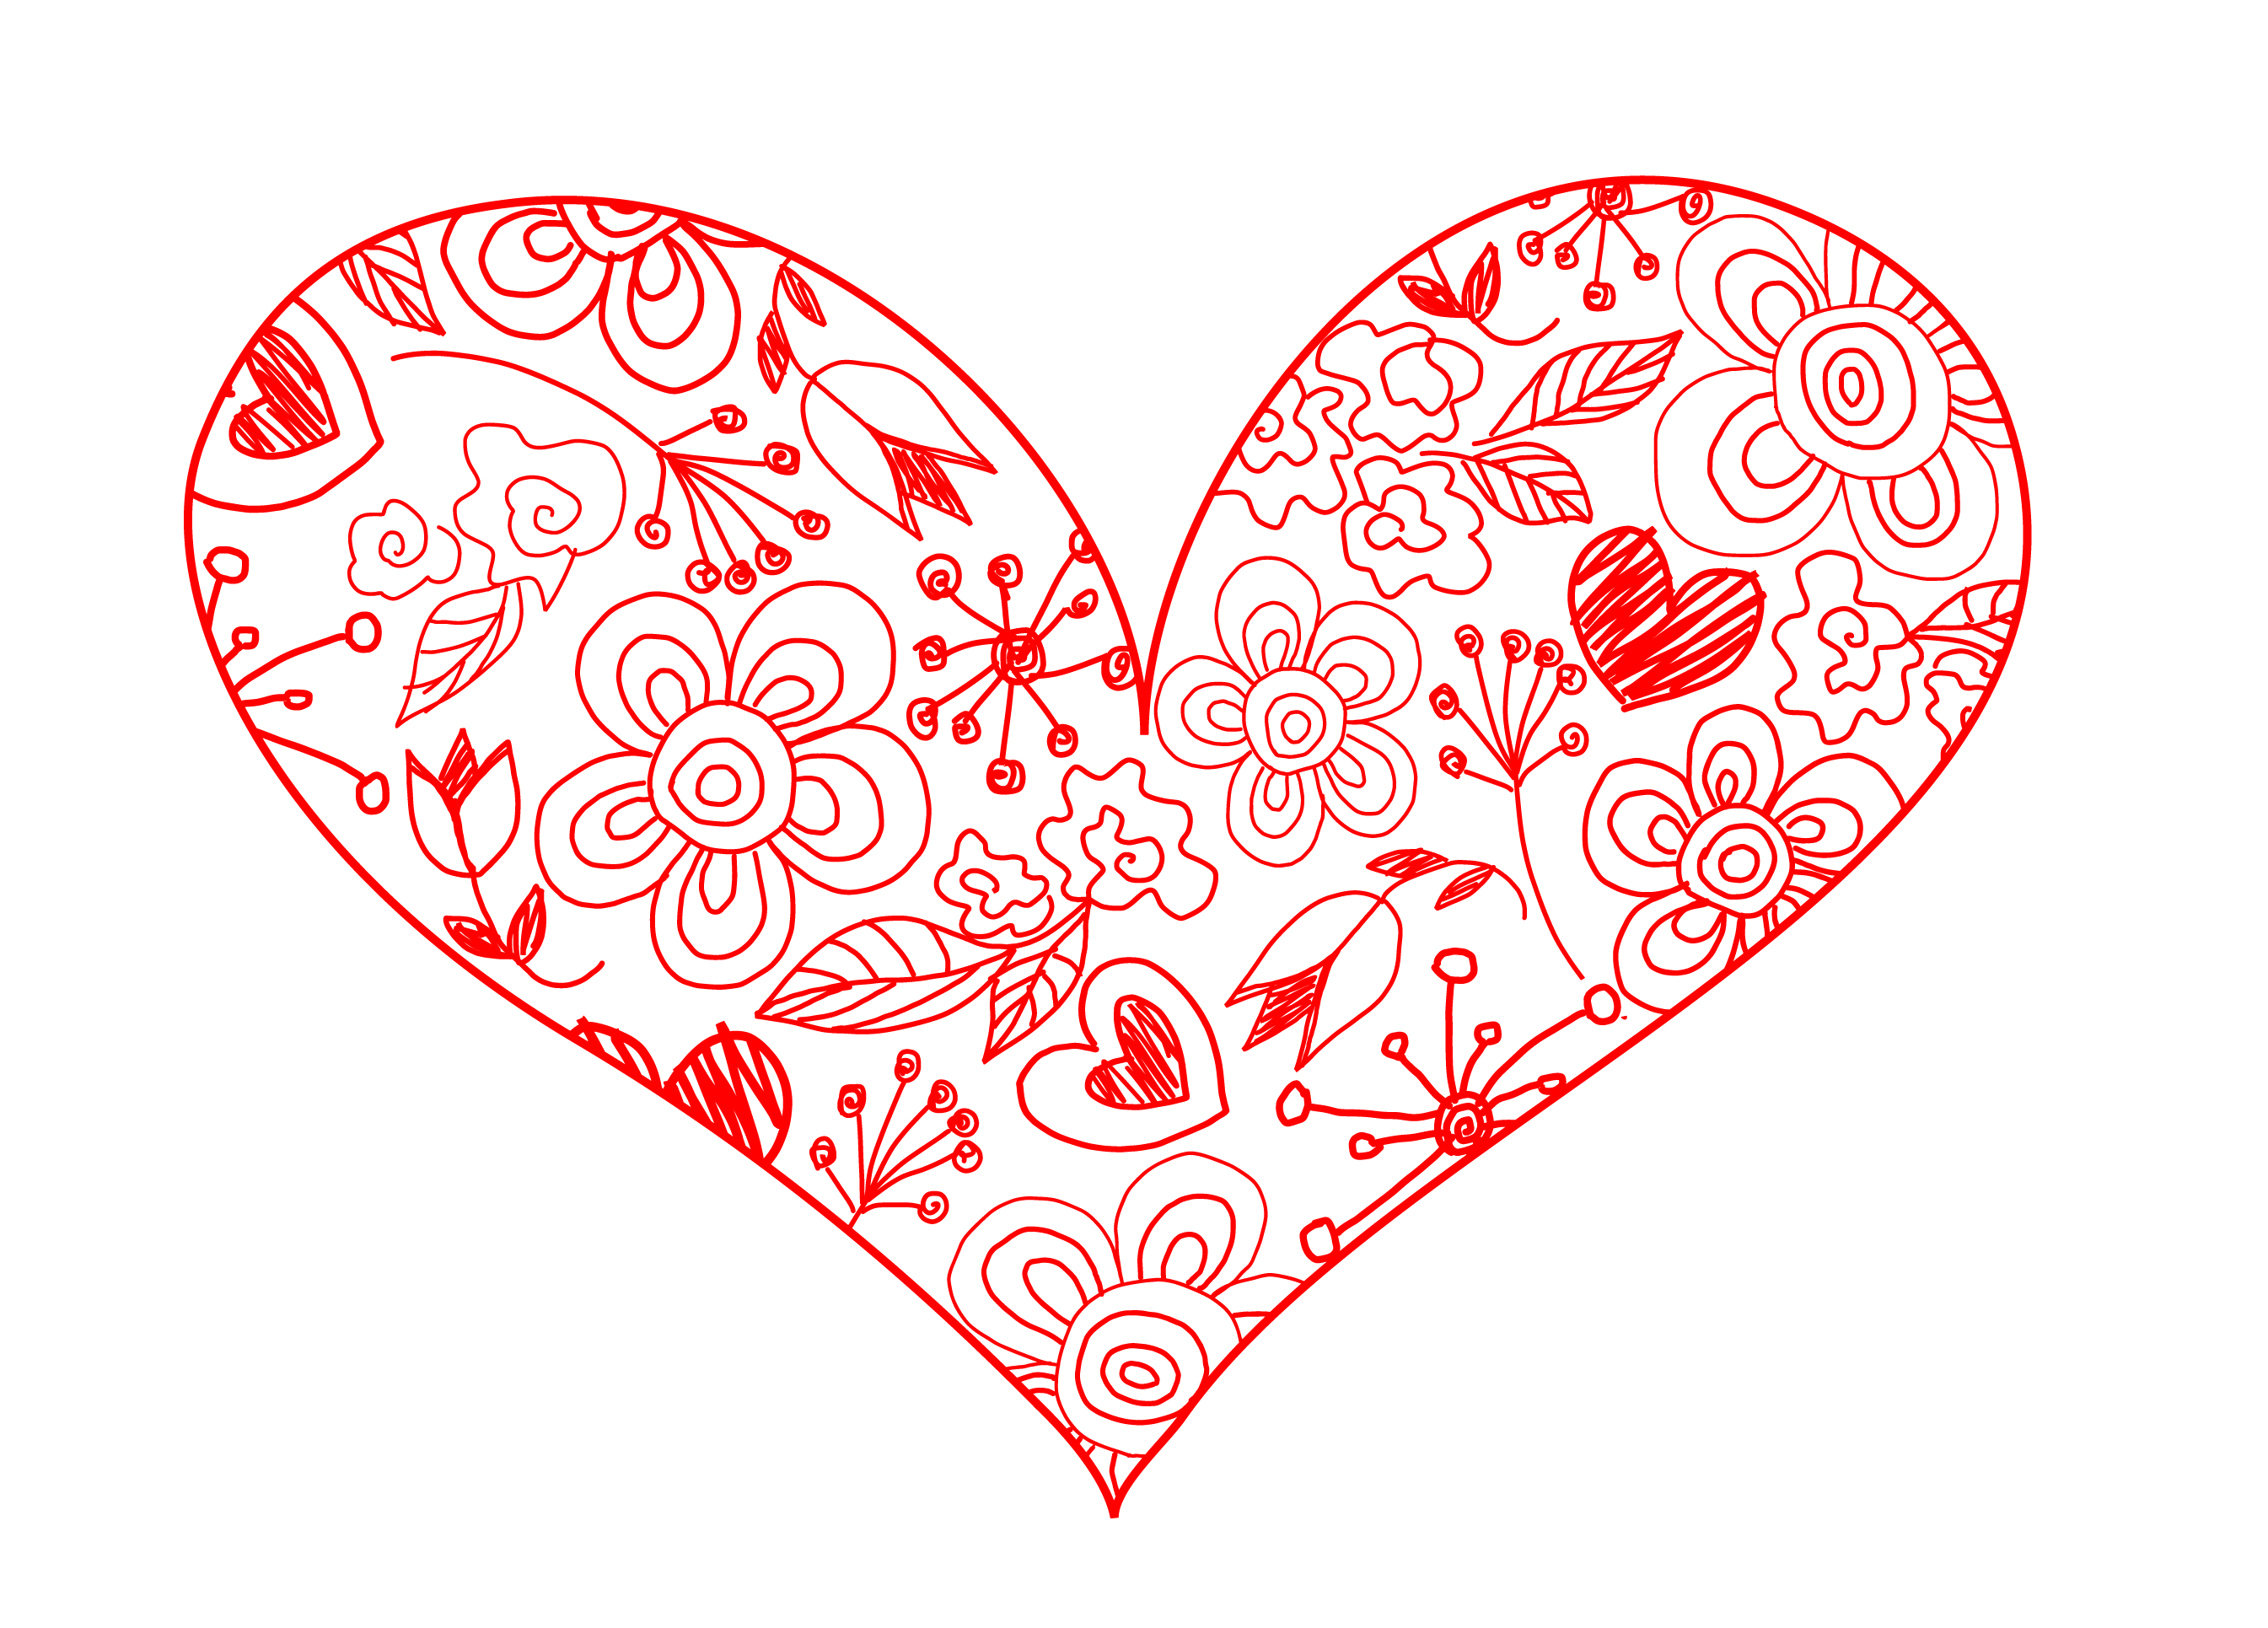 vector black and white download Hearts clip vintage heart.  collection of free.